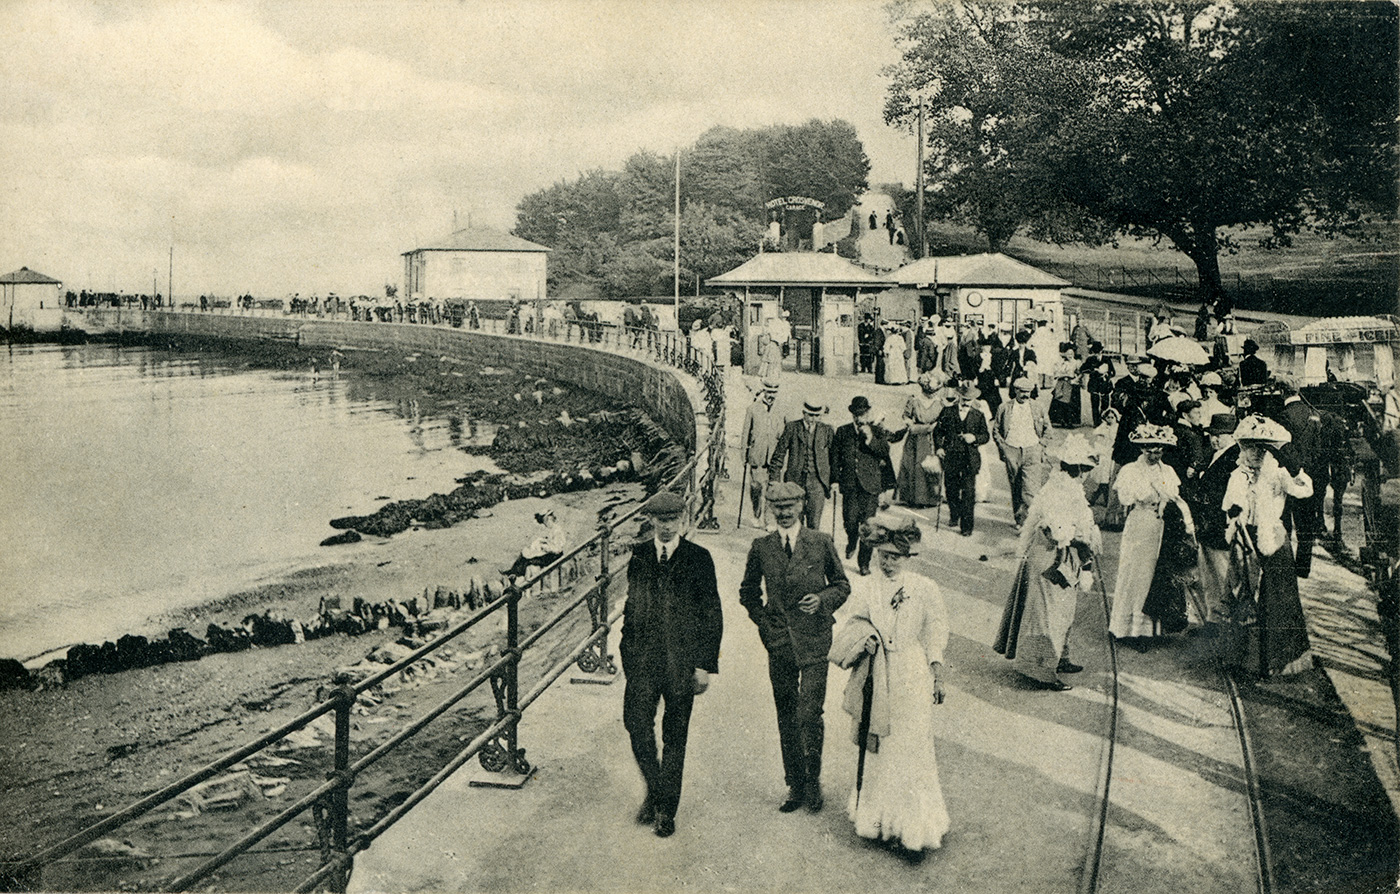 Entrance to Swanage Pier 1890